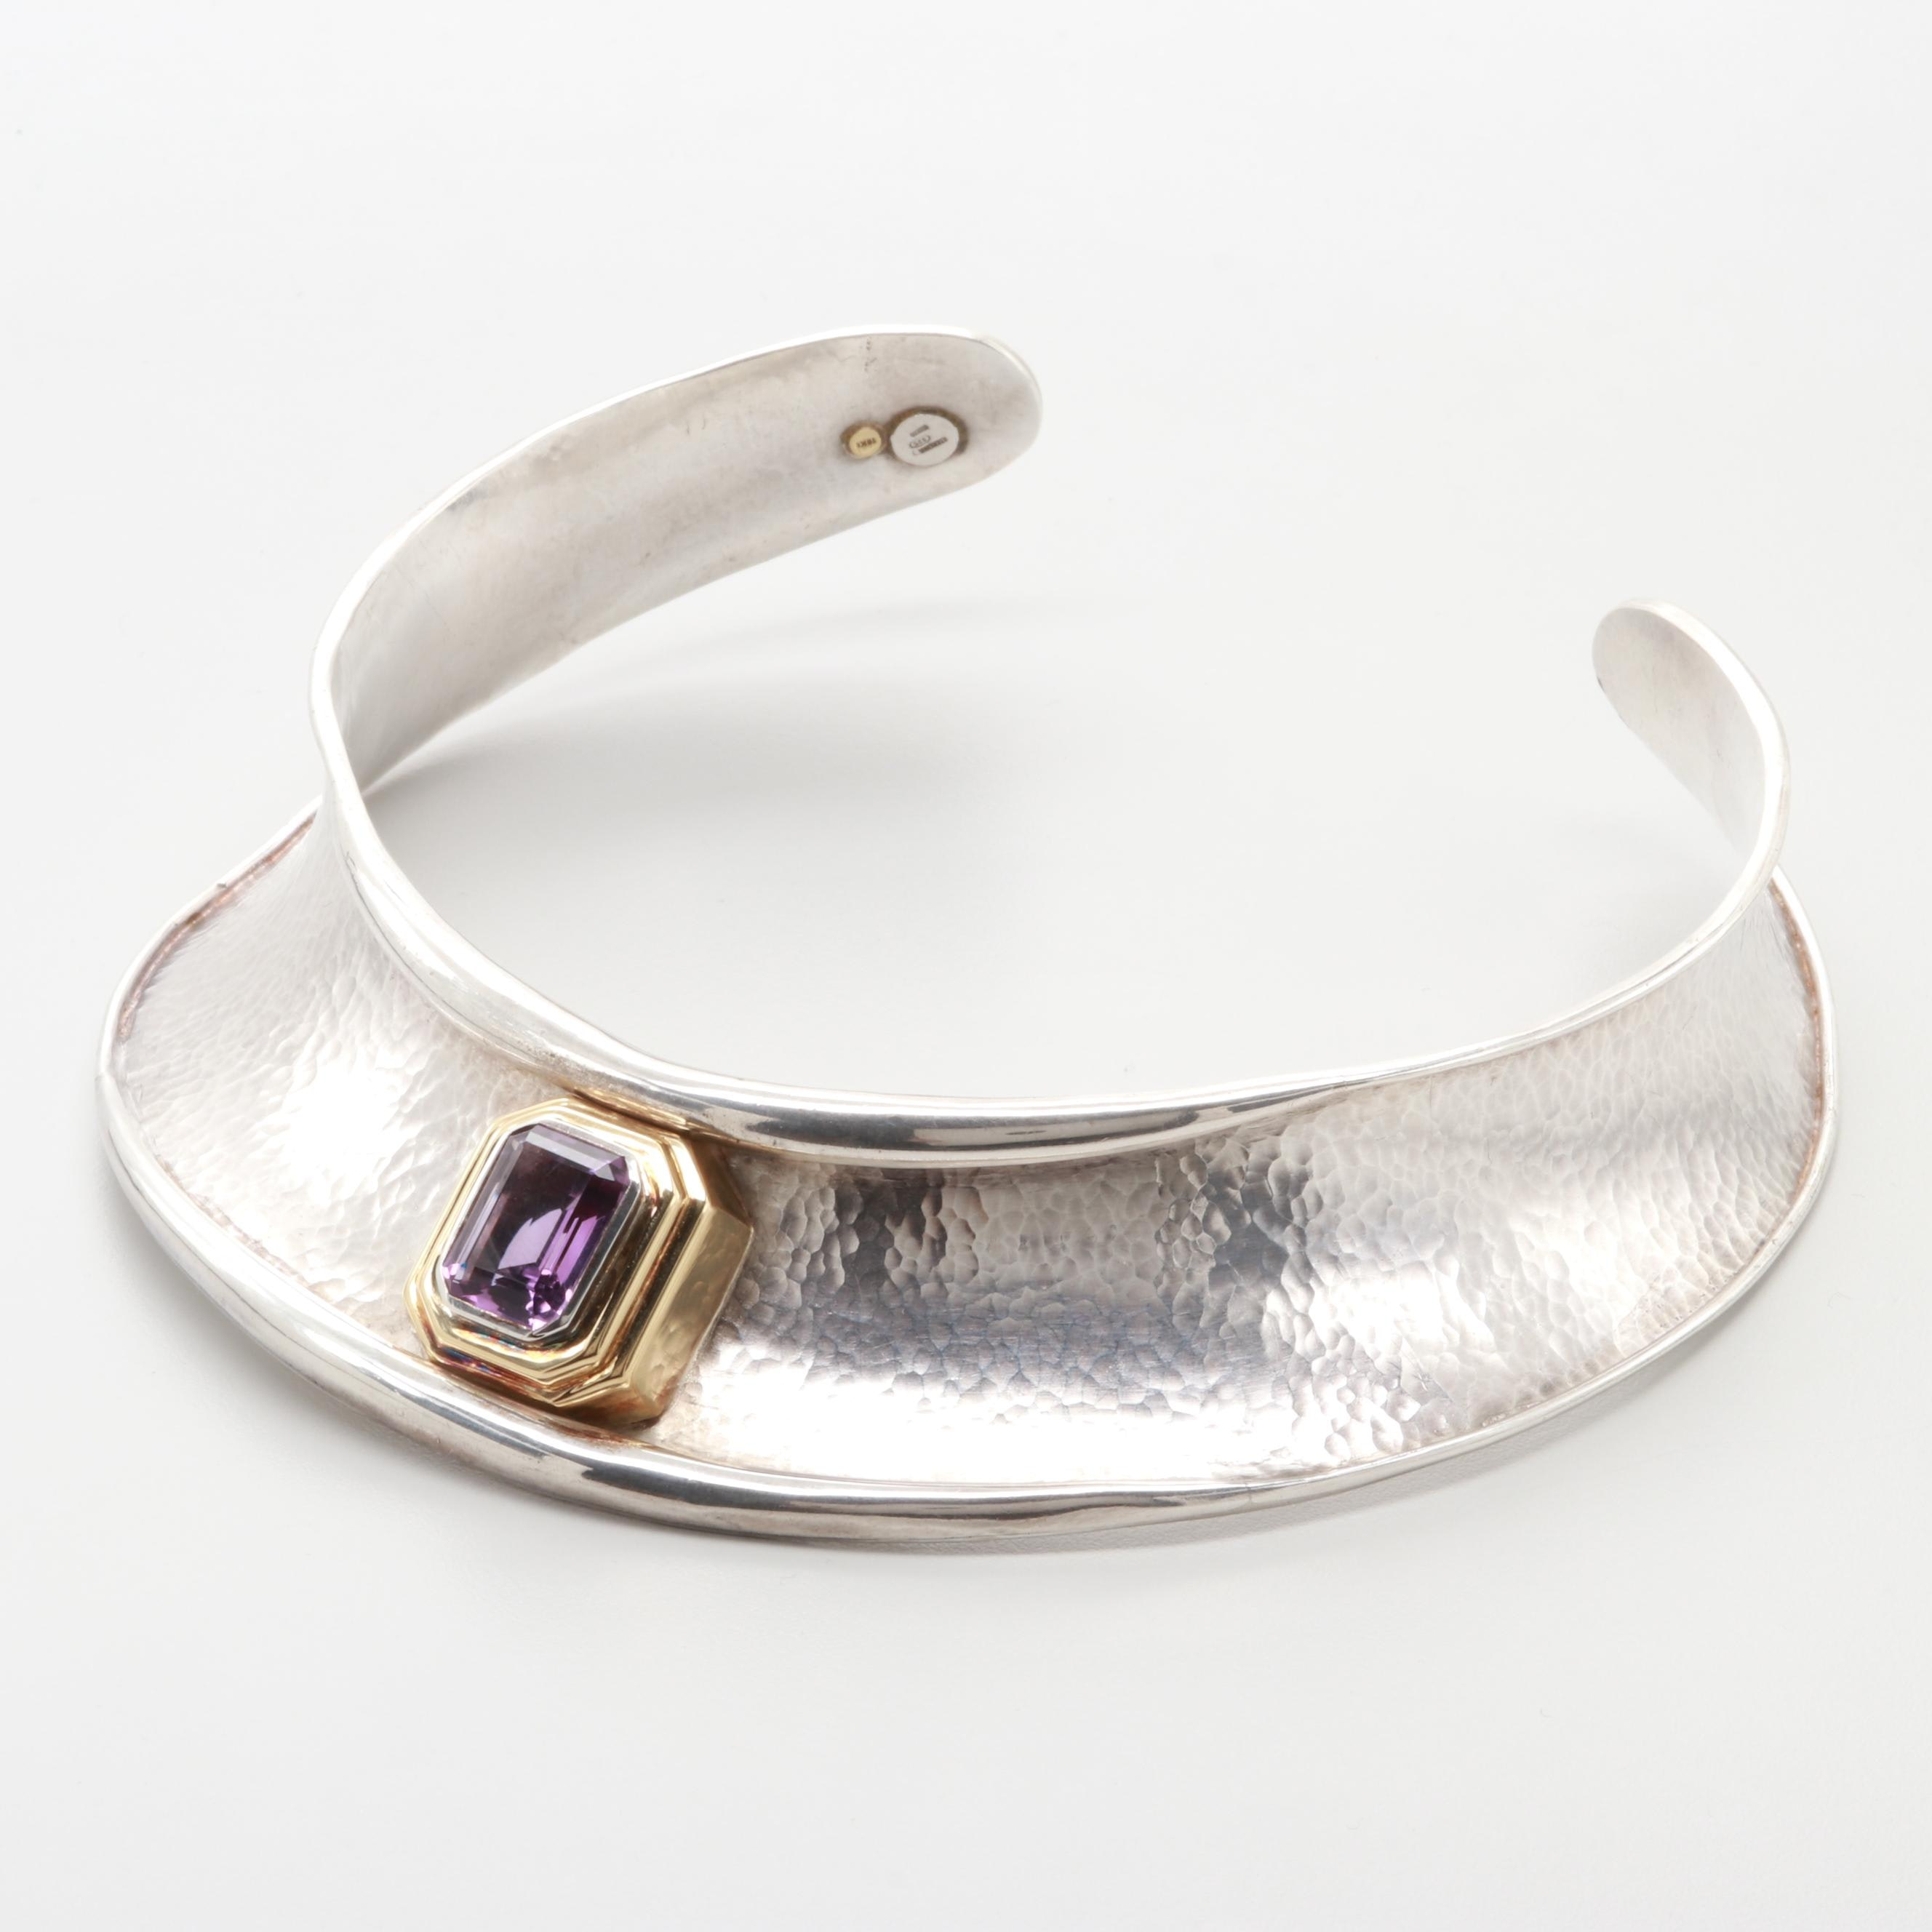 Italian Sterling Silver 9.48 CT Amethyst Necklace with 18K Yellow Gold Accents